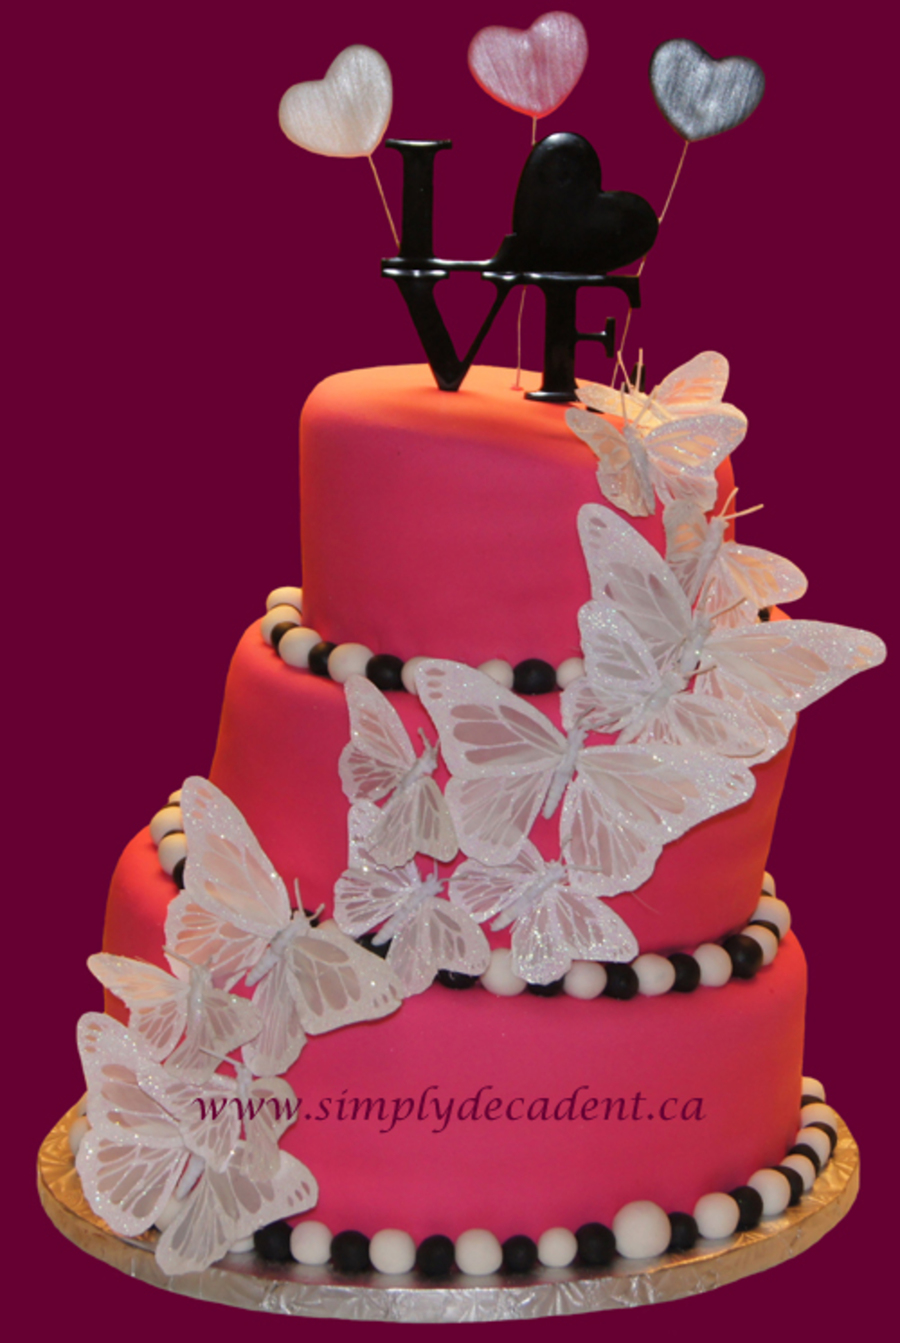 3 Tier Pink Fondant Topsy Turvy Wedding Cake With Butterflies Amp Hearts on Cake Central